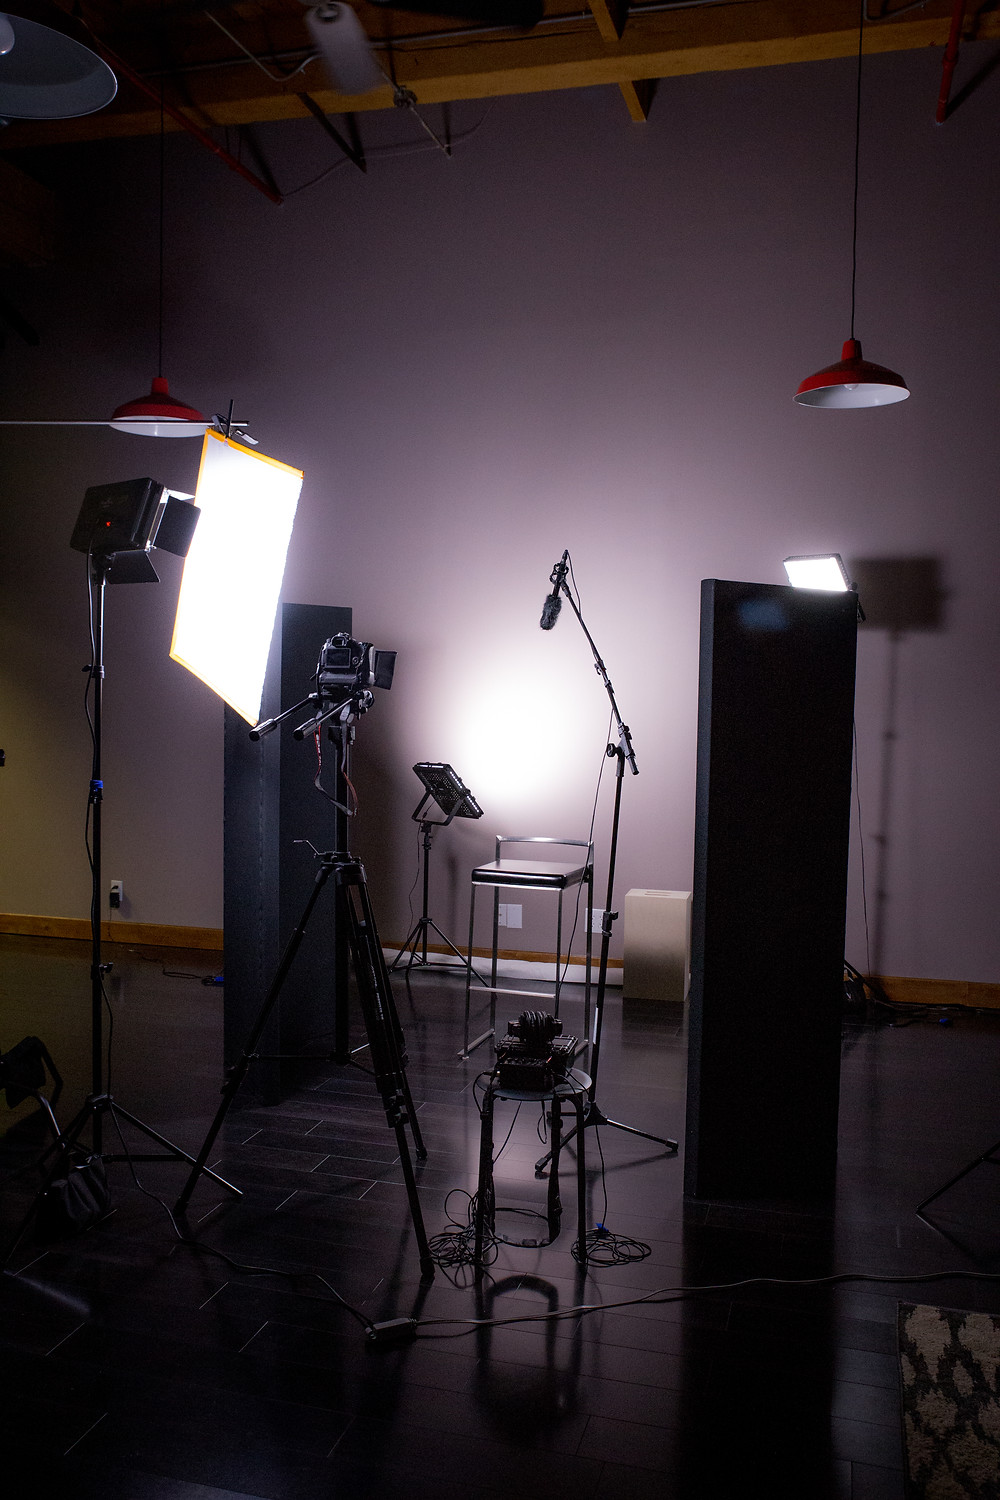 Thespis Media Studio set up for express video session